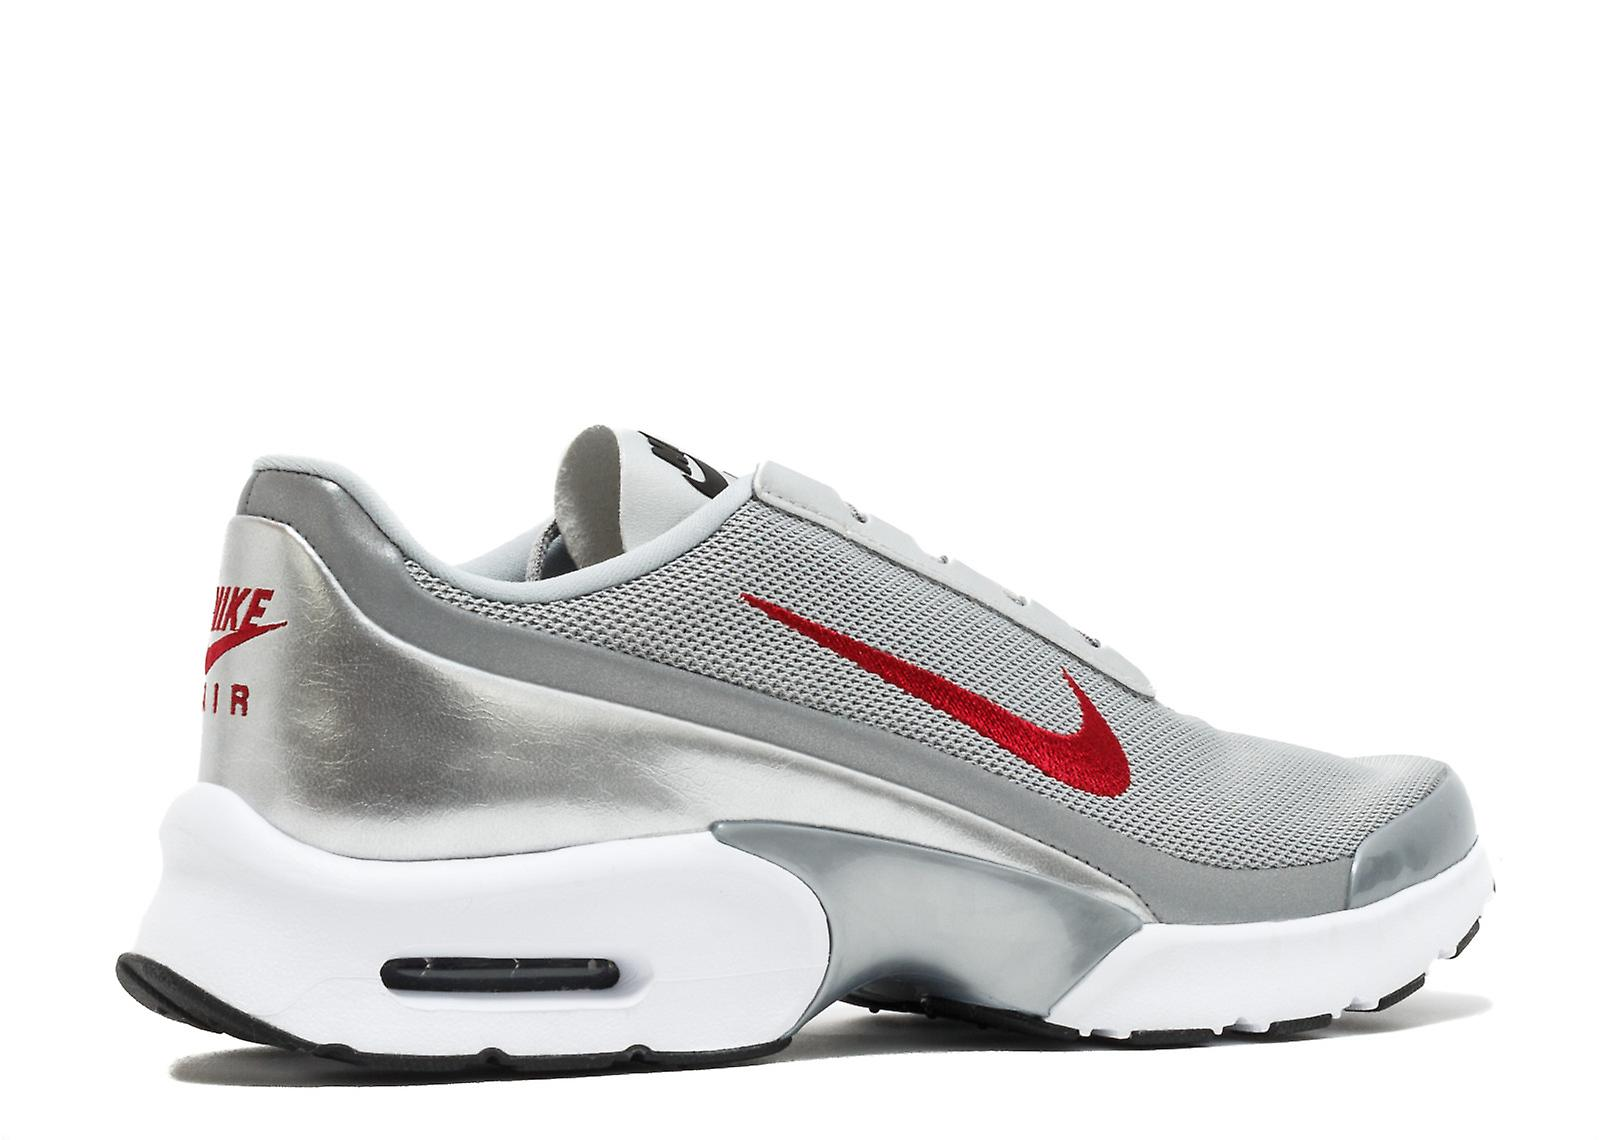 Nike Air Max Jewell Qs «miracle» - 910313 001 Chaussures